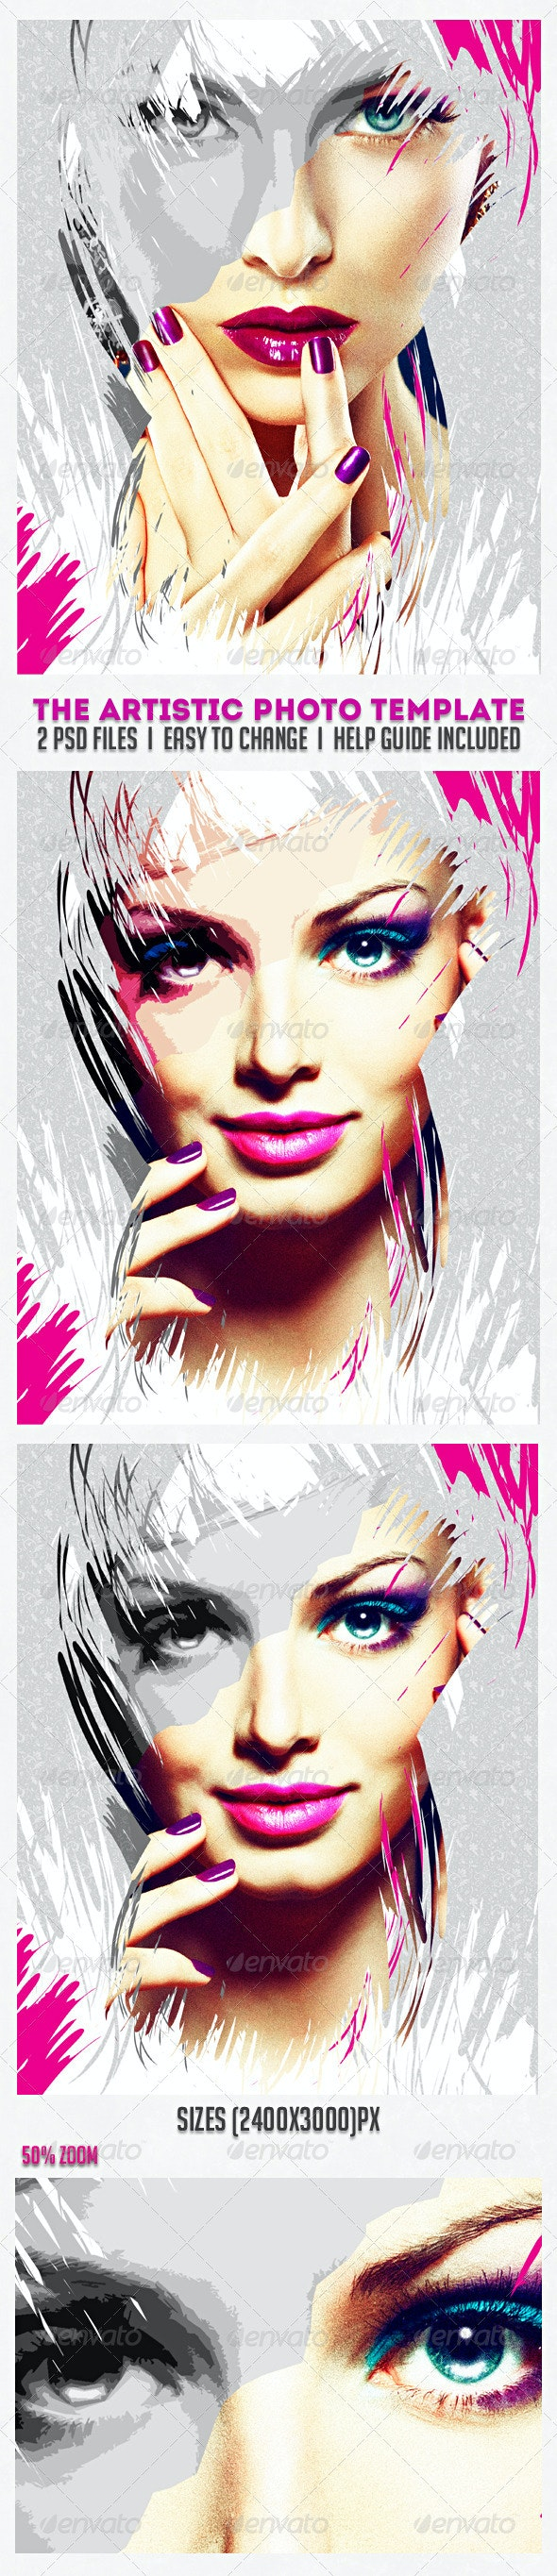 The Artistic Photo Template - Artistic Photo Templates